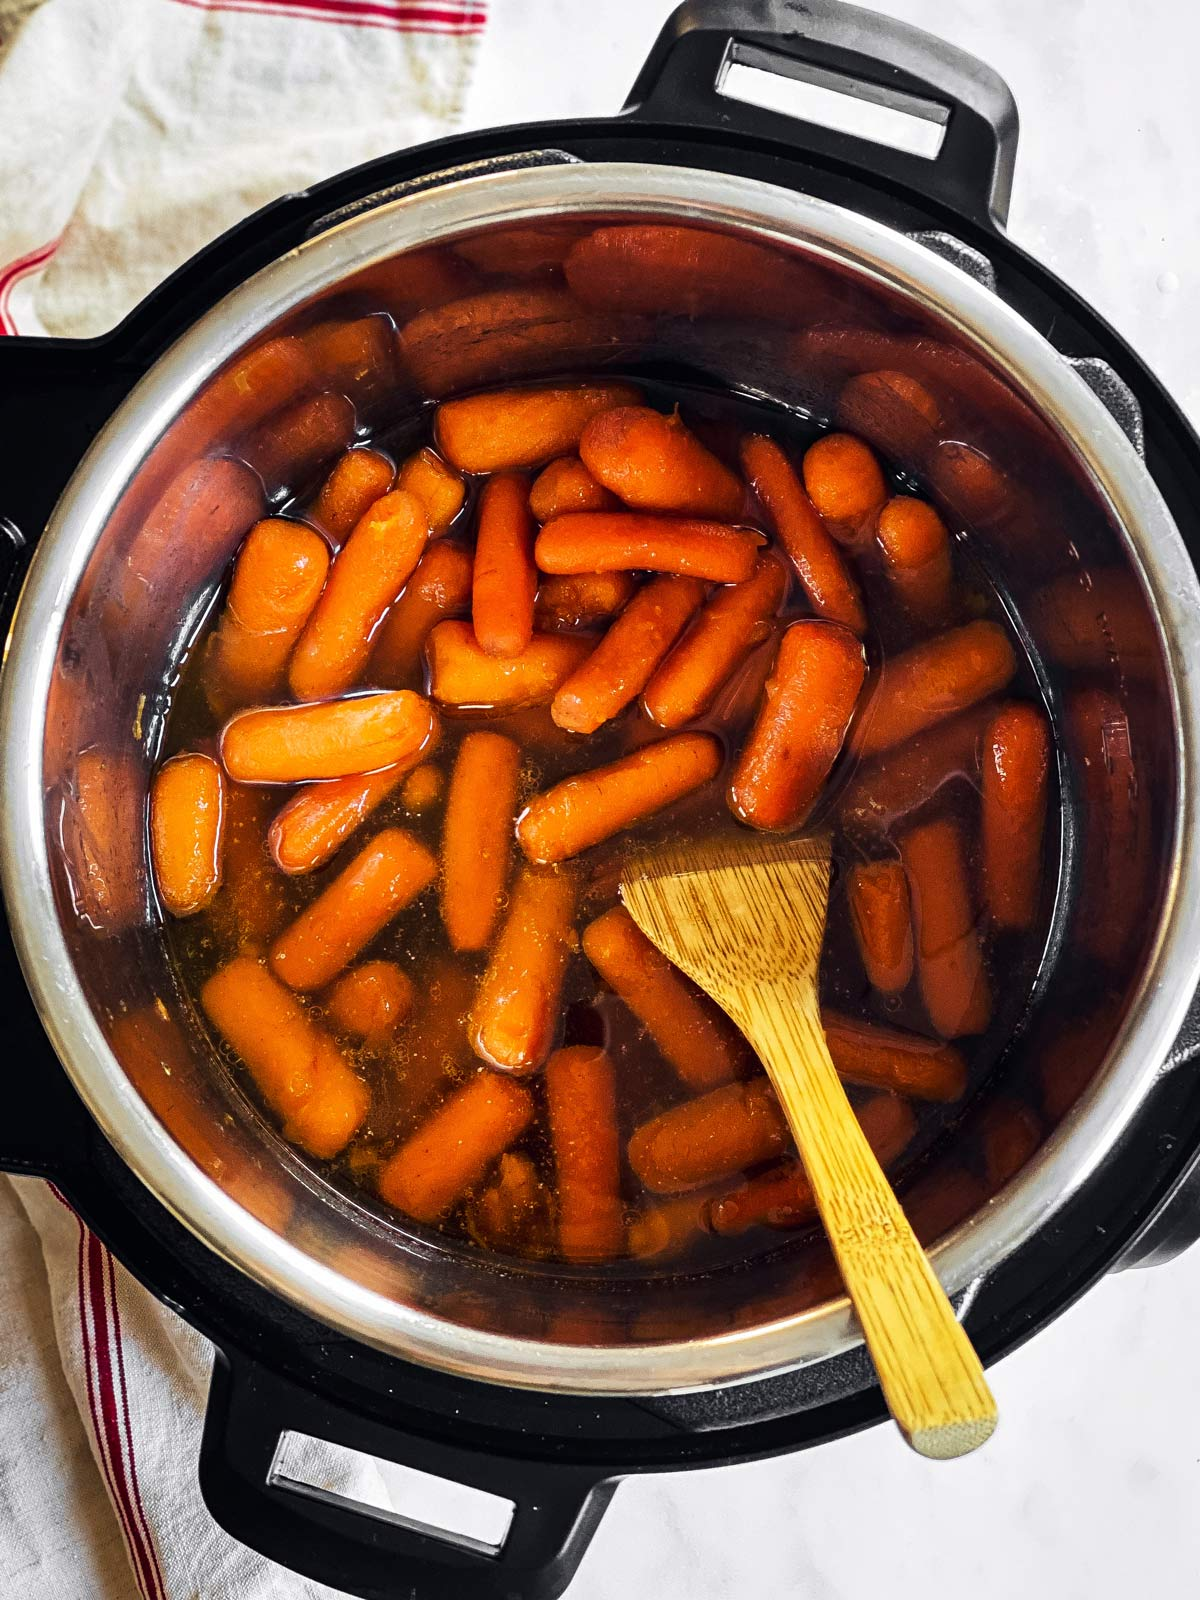 overhead view of instant pot with glazed carrots